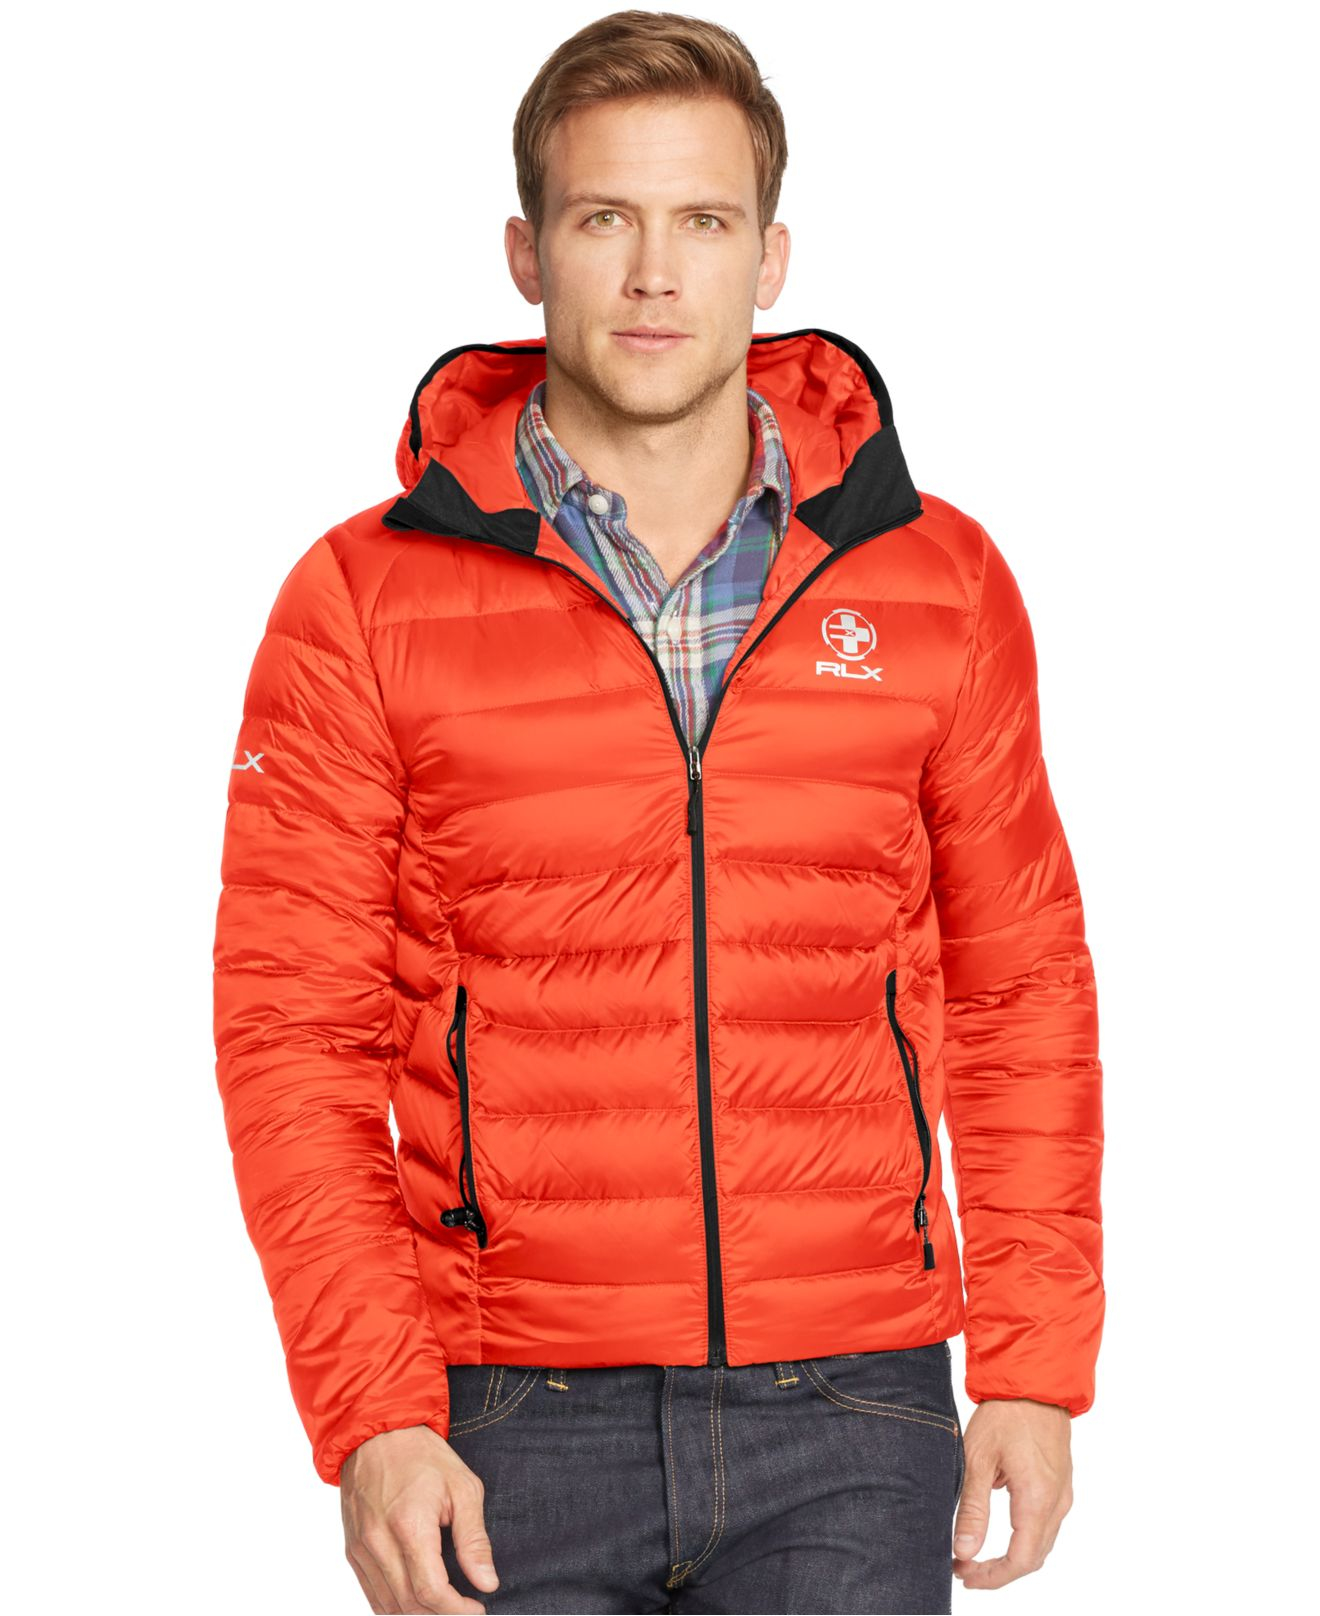 cdac4f691 ... coupon code for lyst polo ralph lauren rlx explorer down jacket in  orange for men b939b